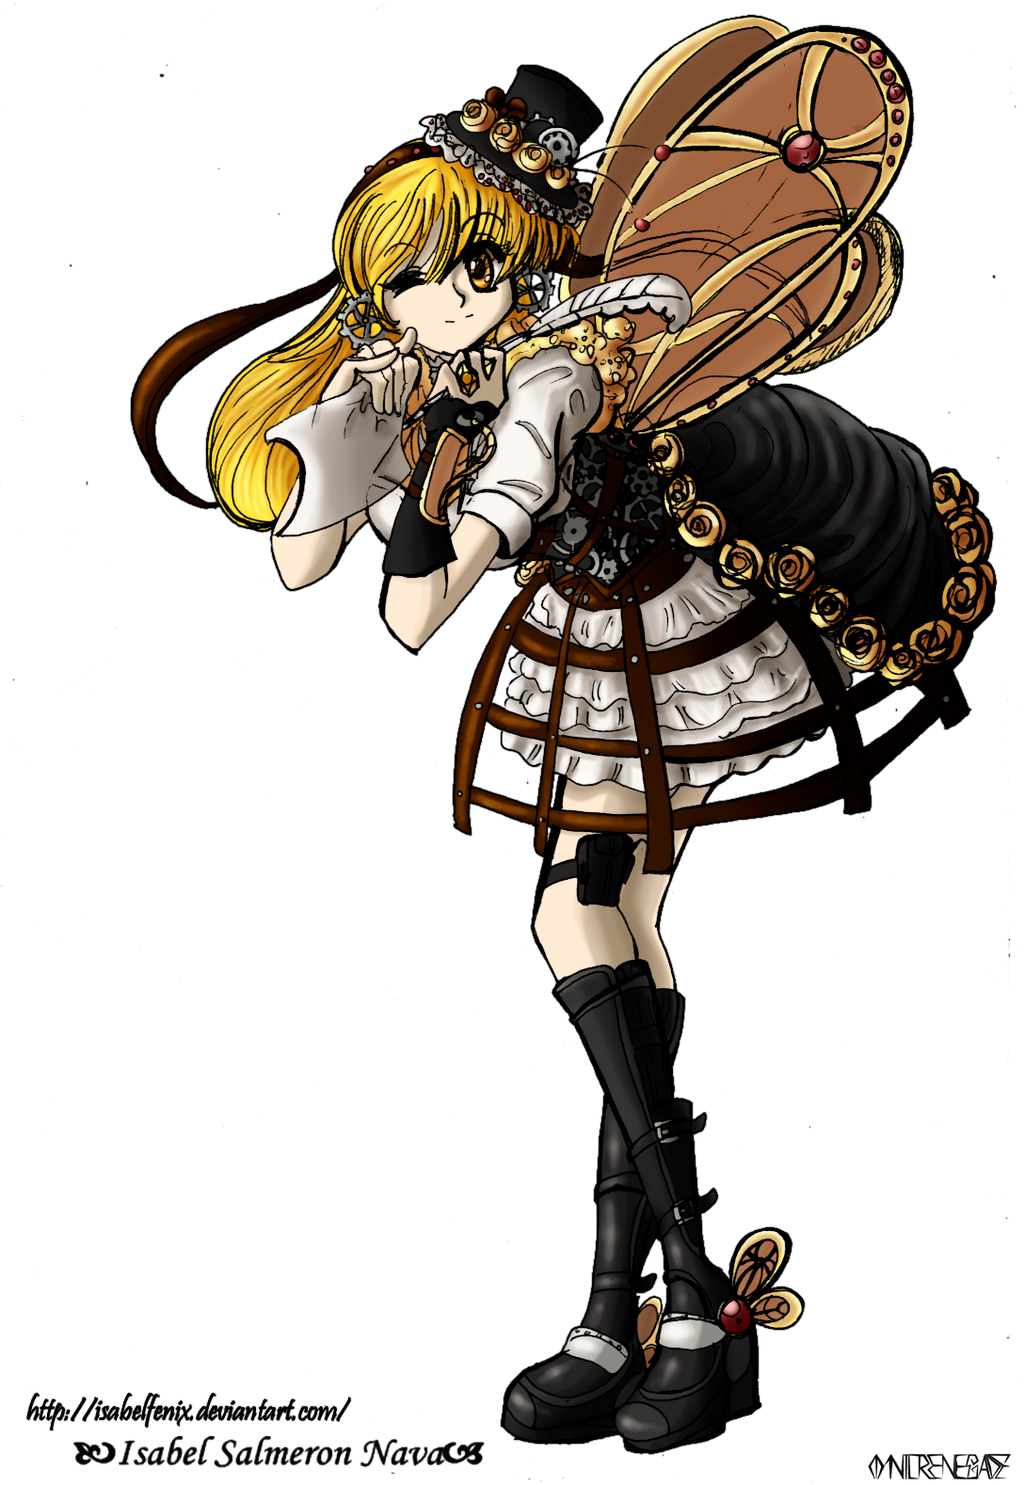 steam punk anime steampunk - photo #21